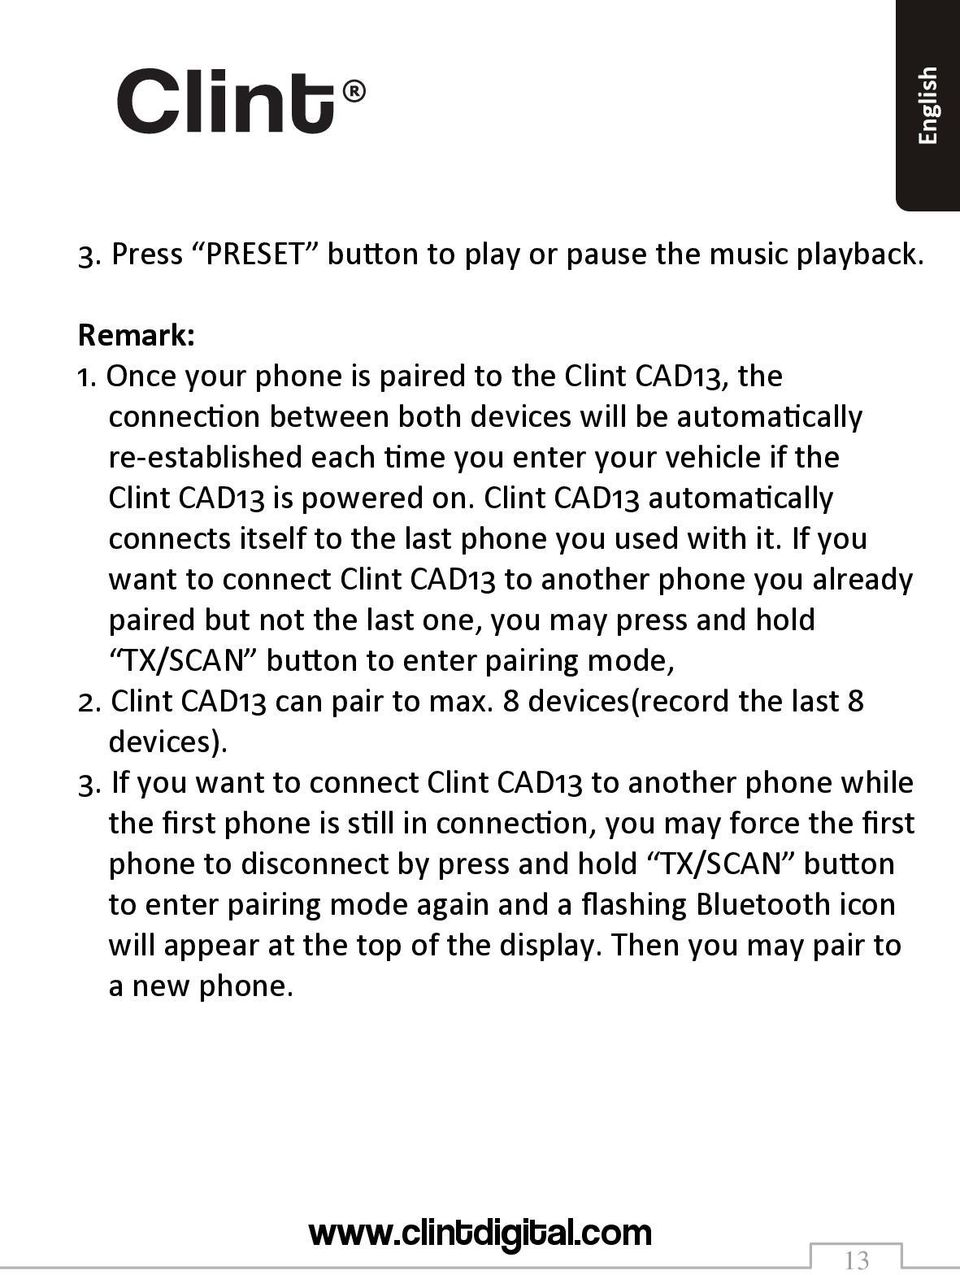 Clint CAD13 automatically connects itself to the last phone you used with it.